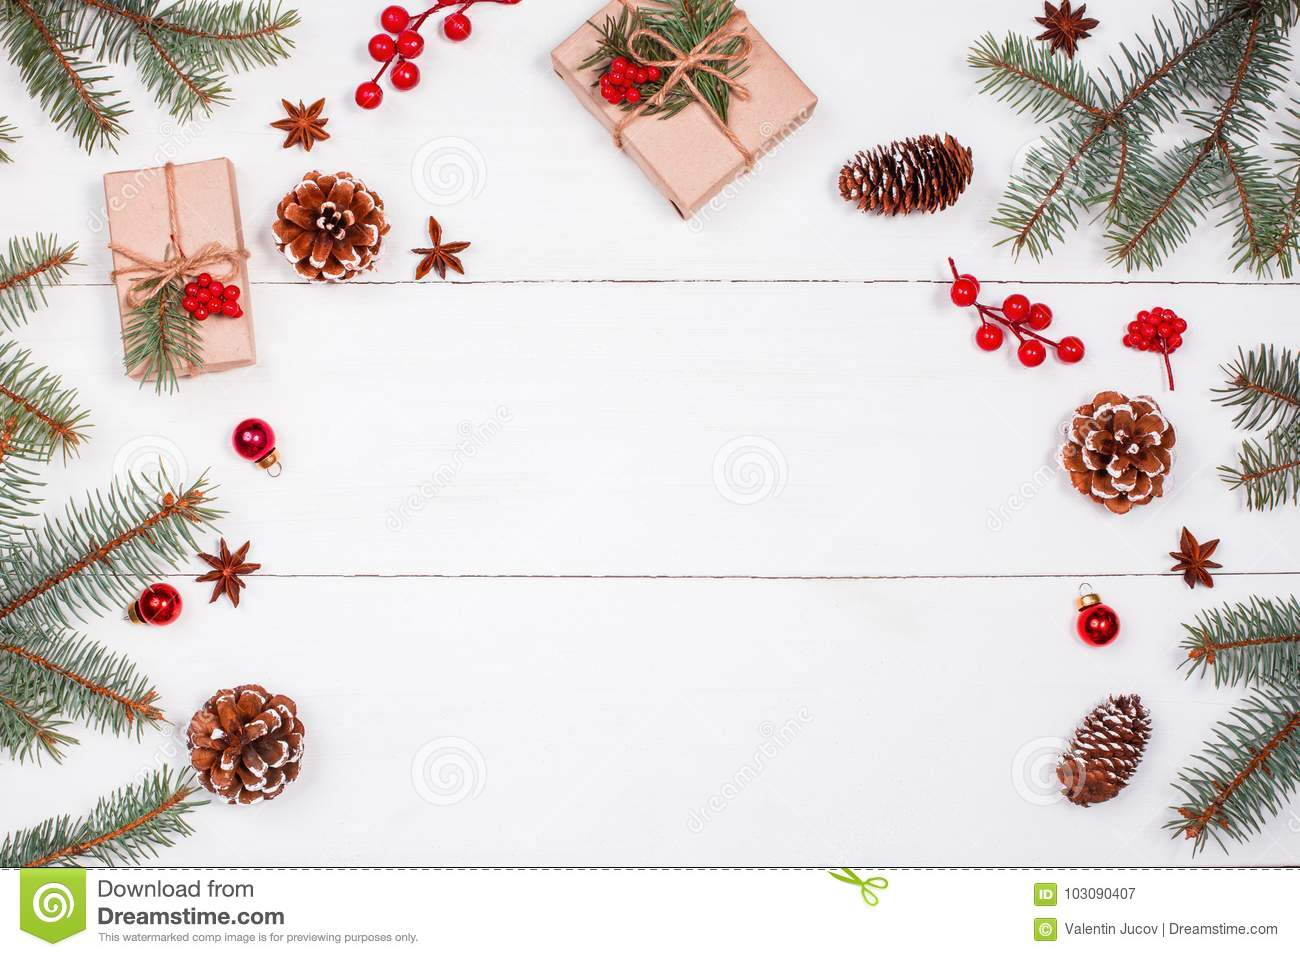 Download Christmas Background With Christmas Gift, Fir Branches, Pine Cones, Snowflakes, Red Decorations. Xmas And Happy New Year Stock Image - Image of noel, handmade: 103090407